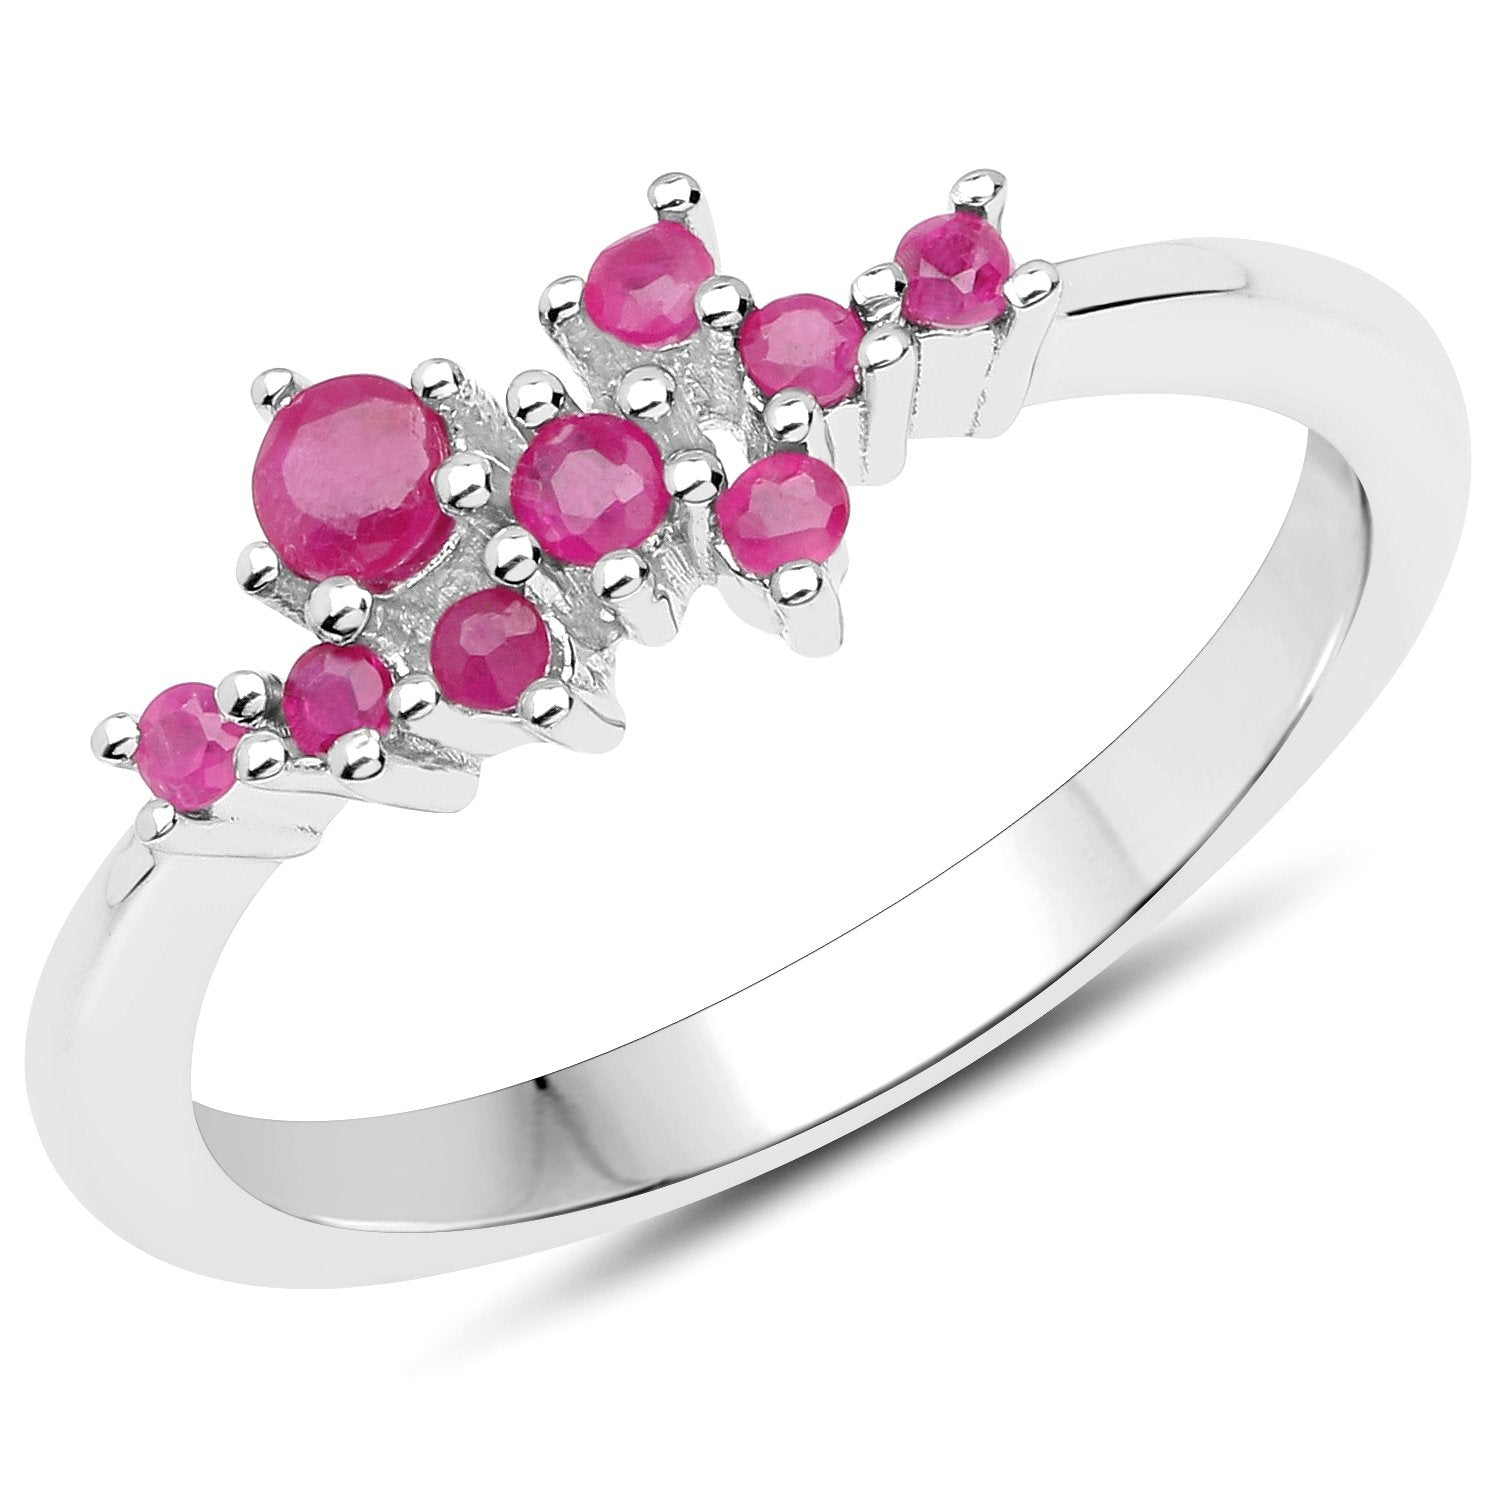 LoveHuang 0.24 Carats Genuine Ruby Ring Solid .925 Sterling Silver With Rhodium Plating